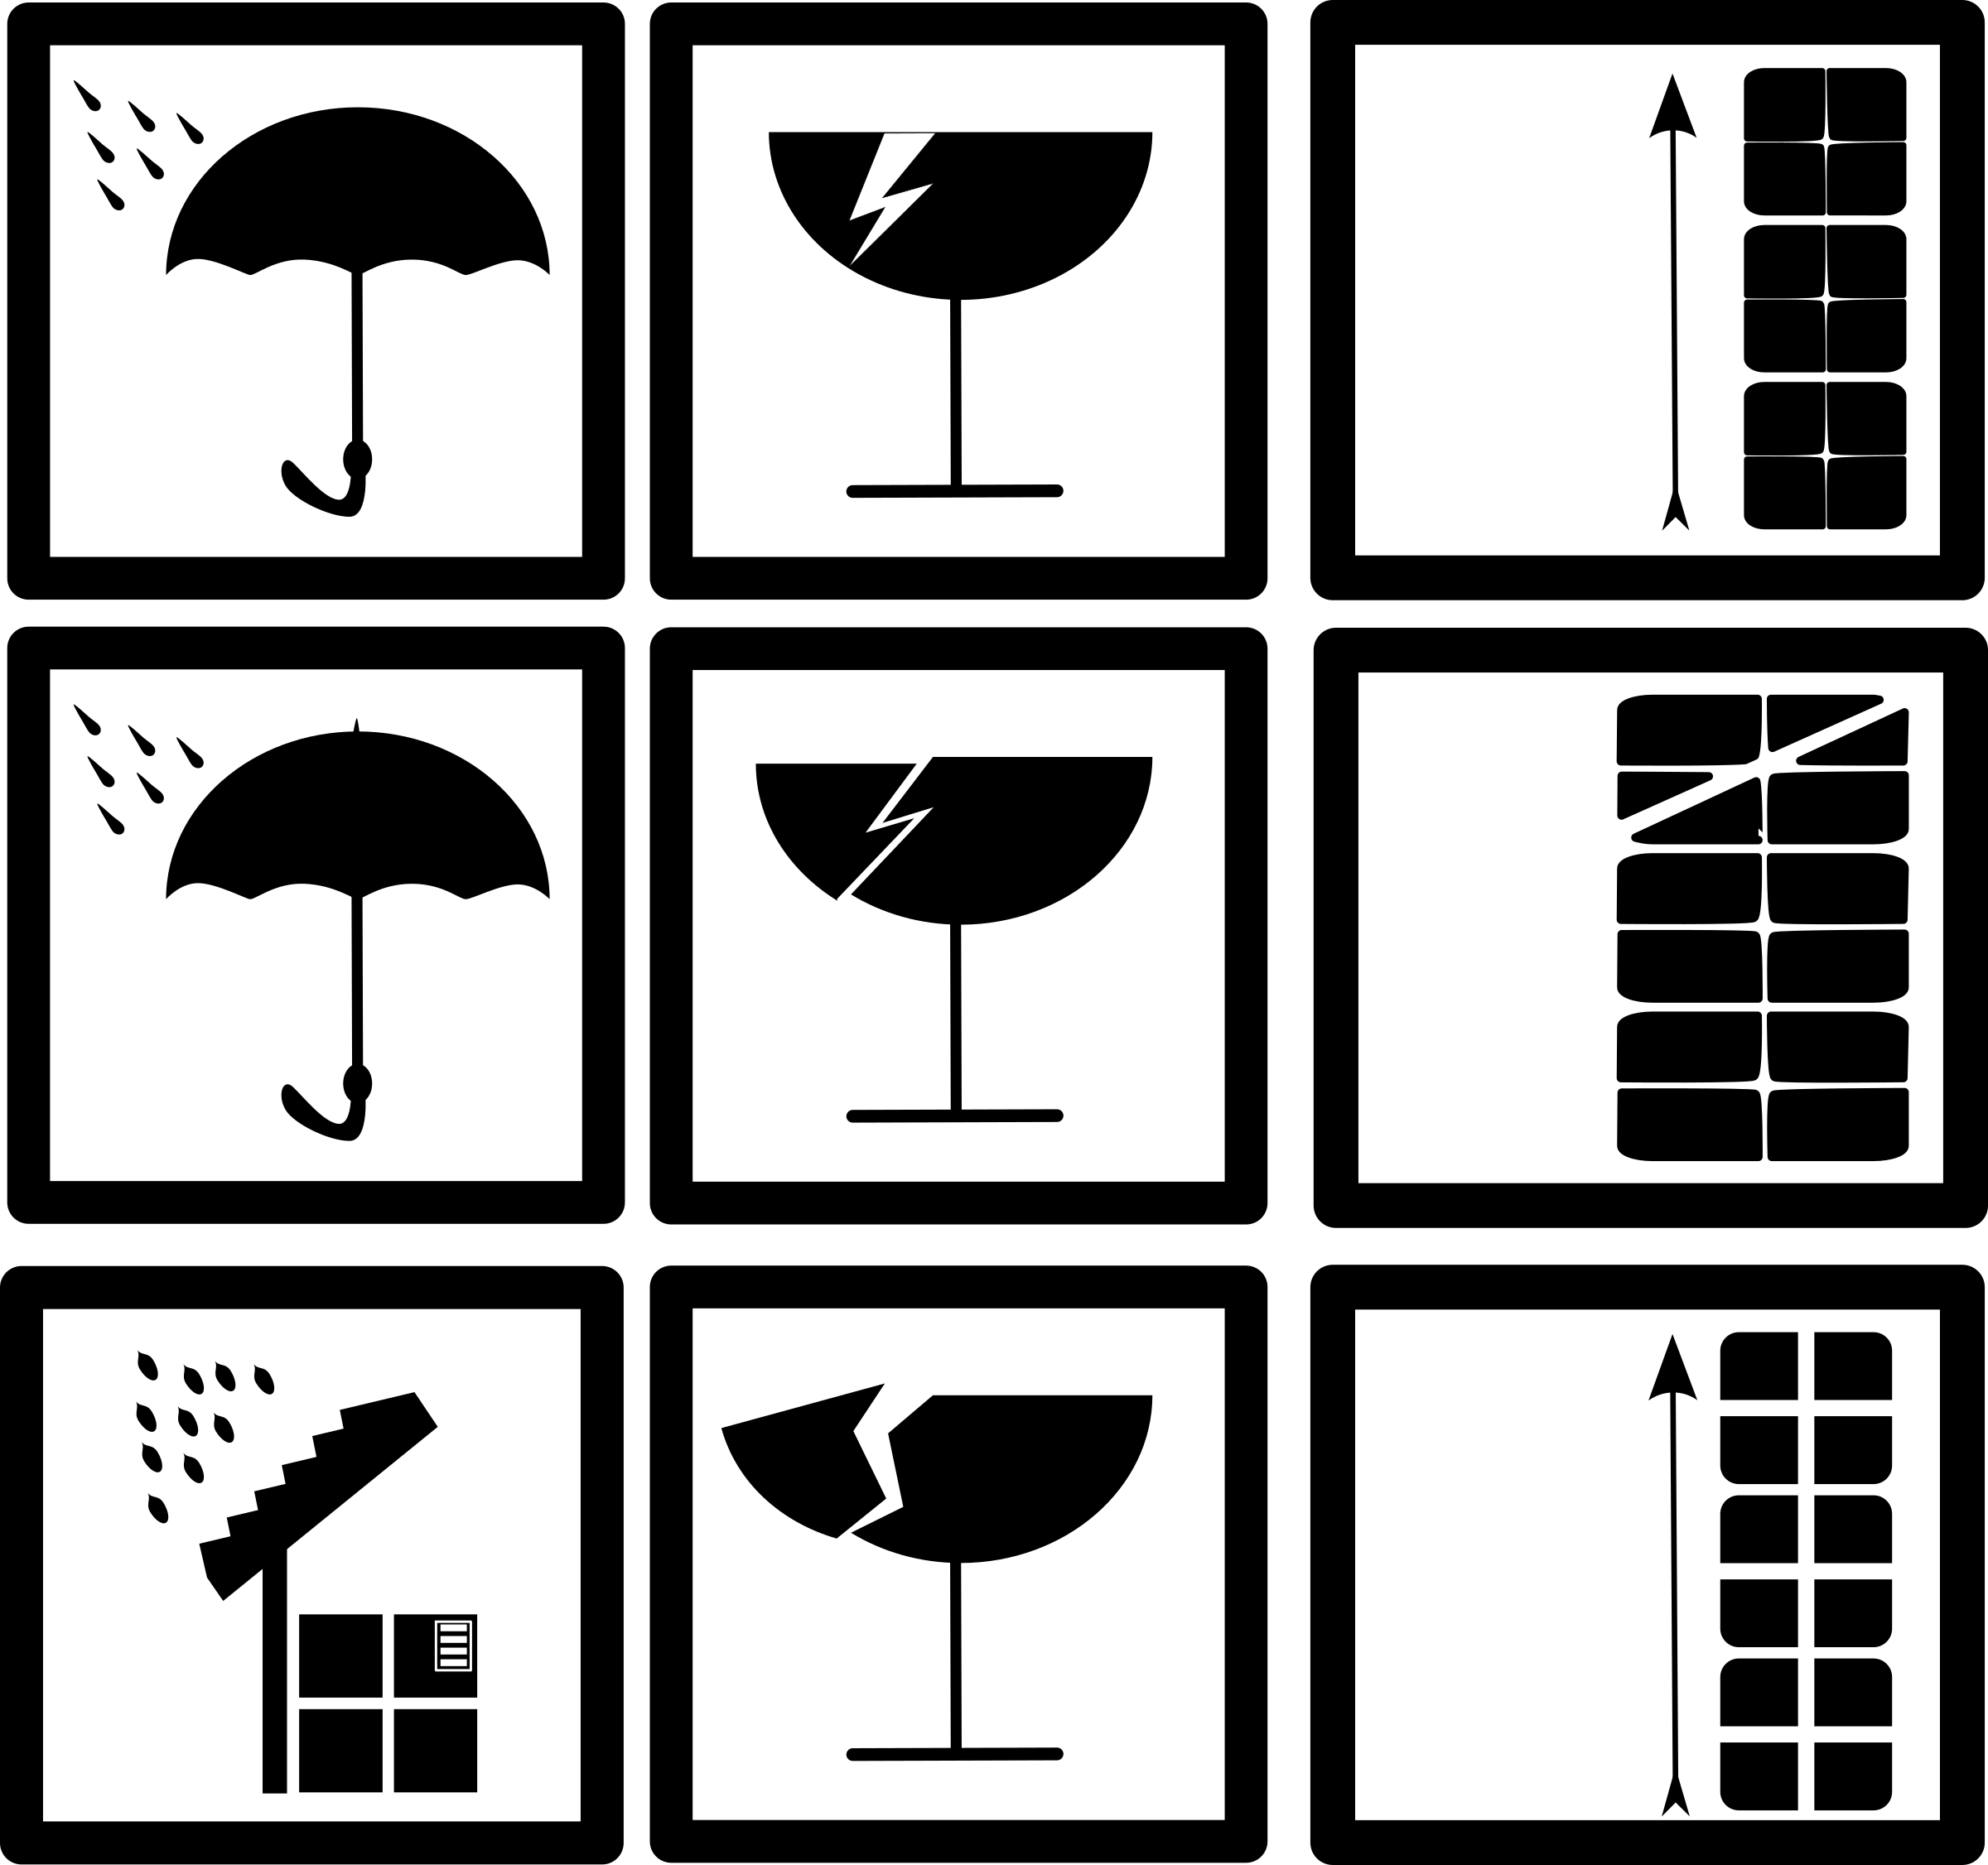 pictograms by drunken_duck